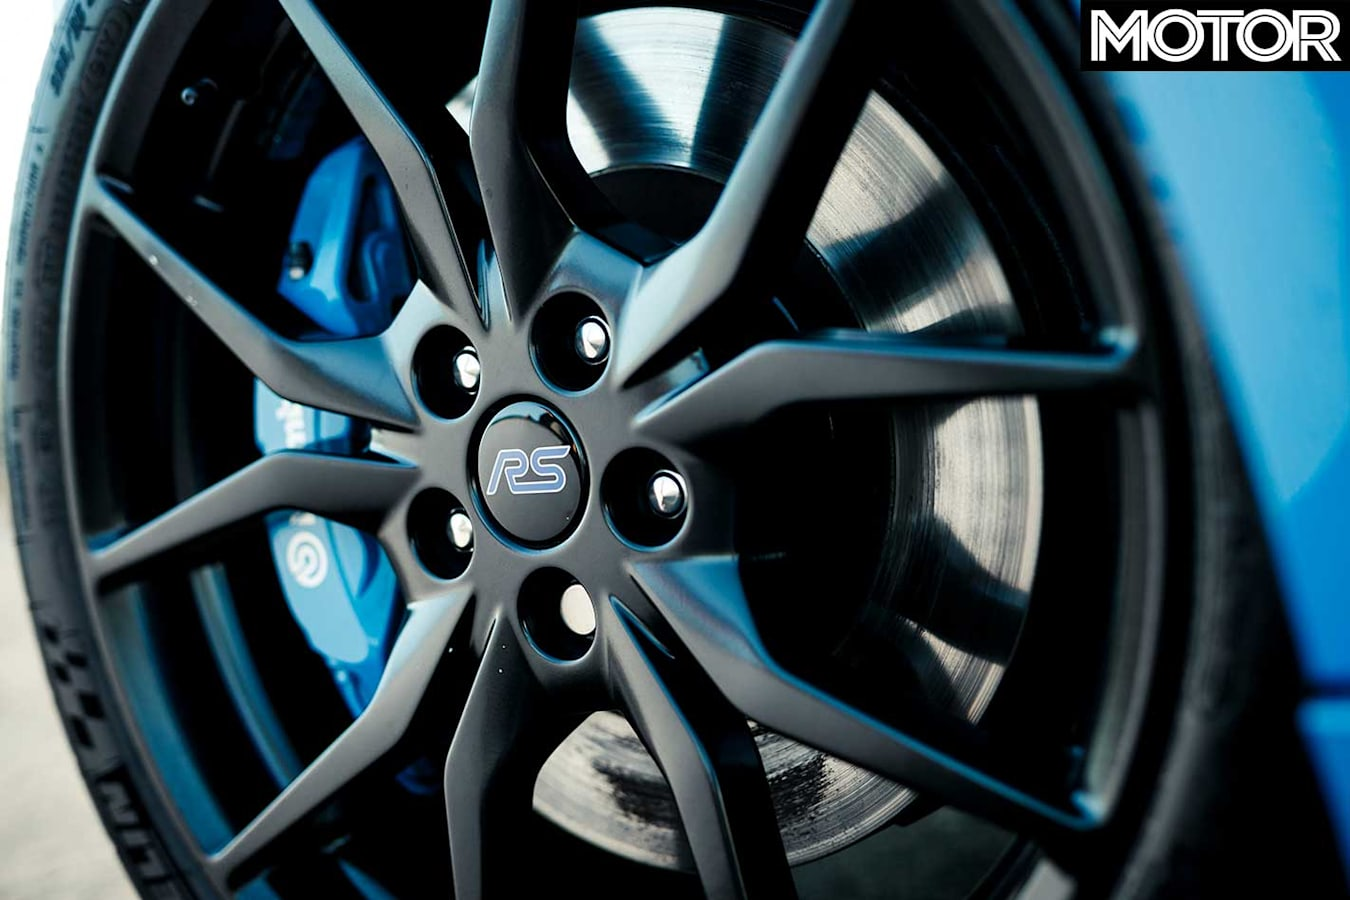 2018 Ford Focus RS Limited Edition Brakes Wheels Tyres Jpg